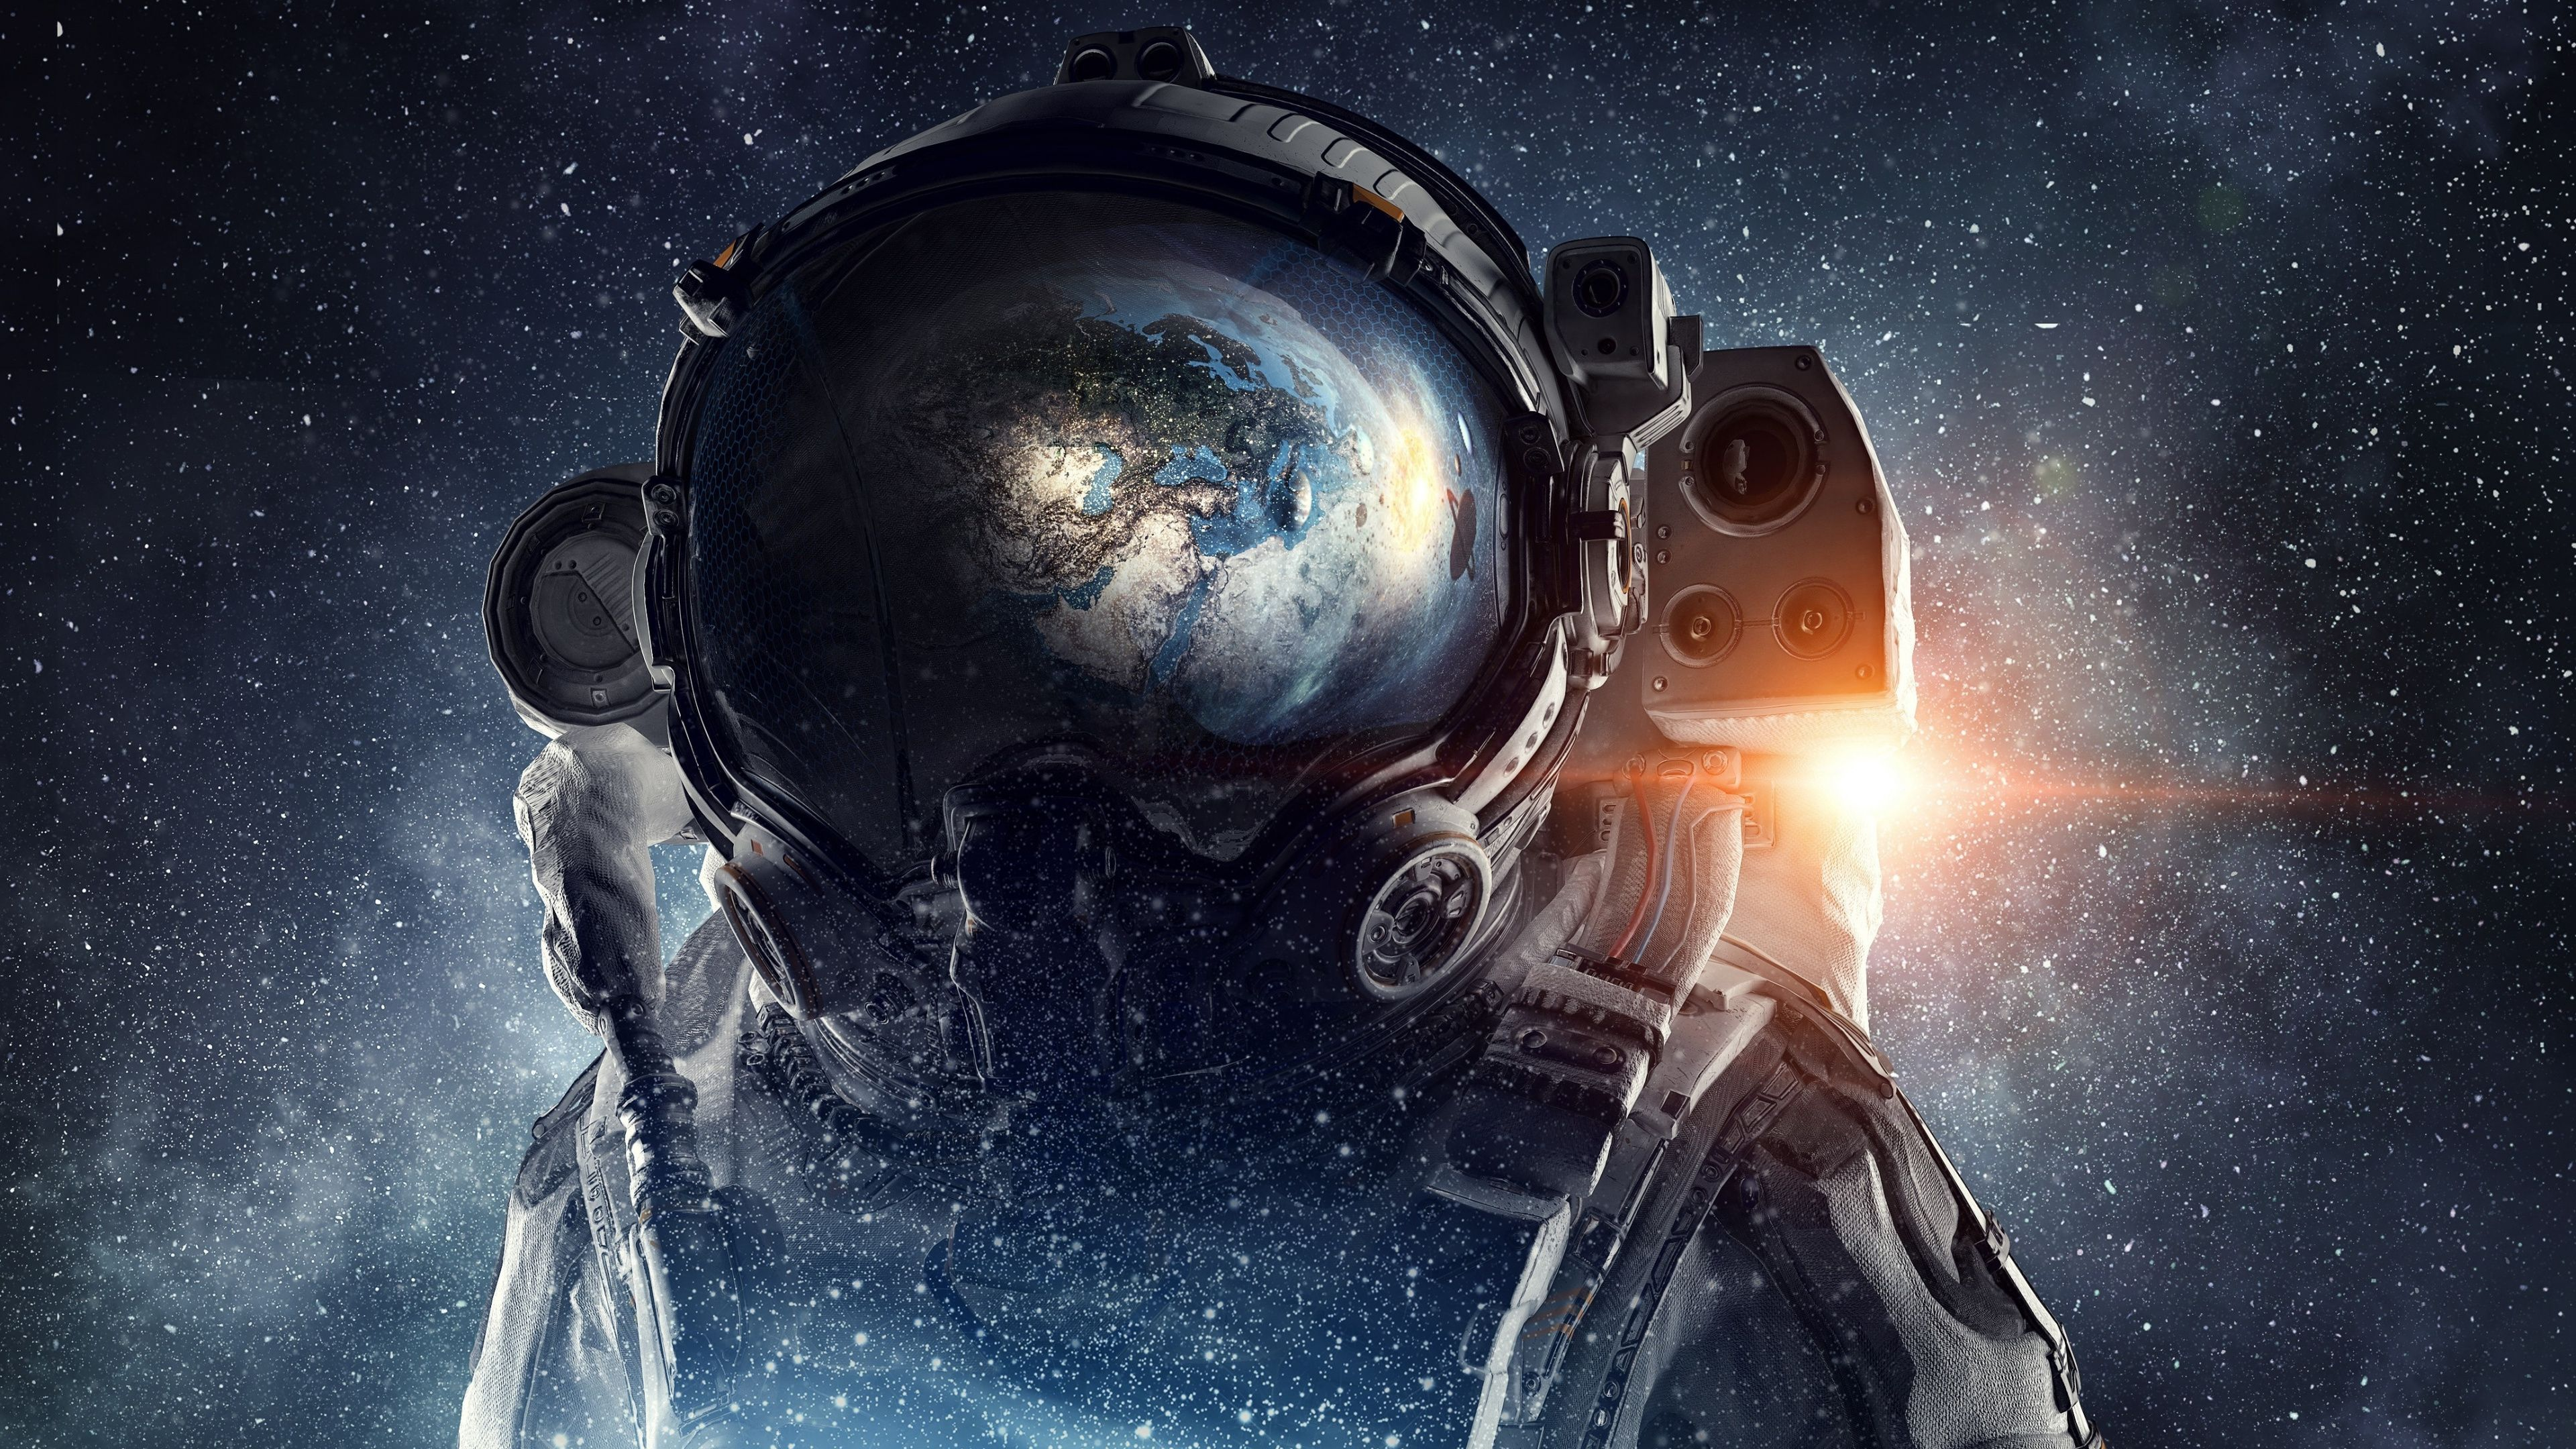 Galaxy High Resolution Aesthetic 4k Ultra Hd Wallpapers Space Cool Photos Resolution Wallpaper In 2020 Space Iphone Wallpaper Astronaut Wallpaper Beast Wallpaper